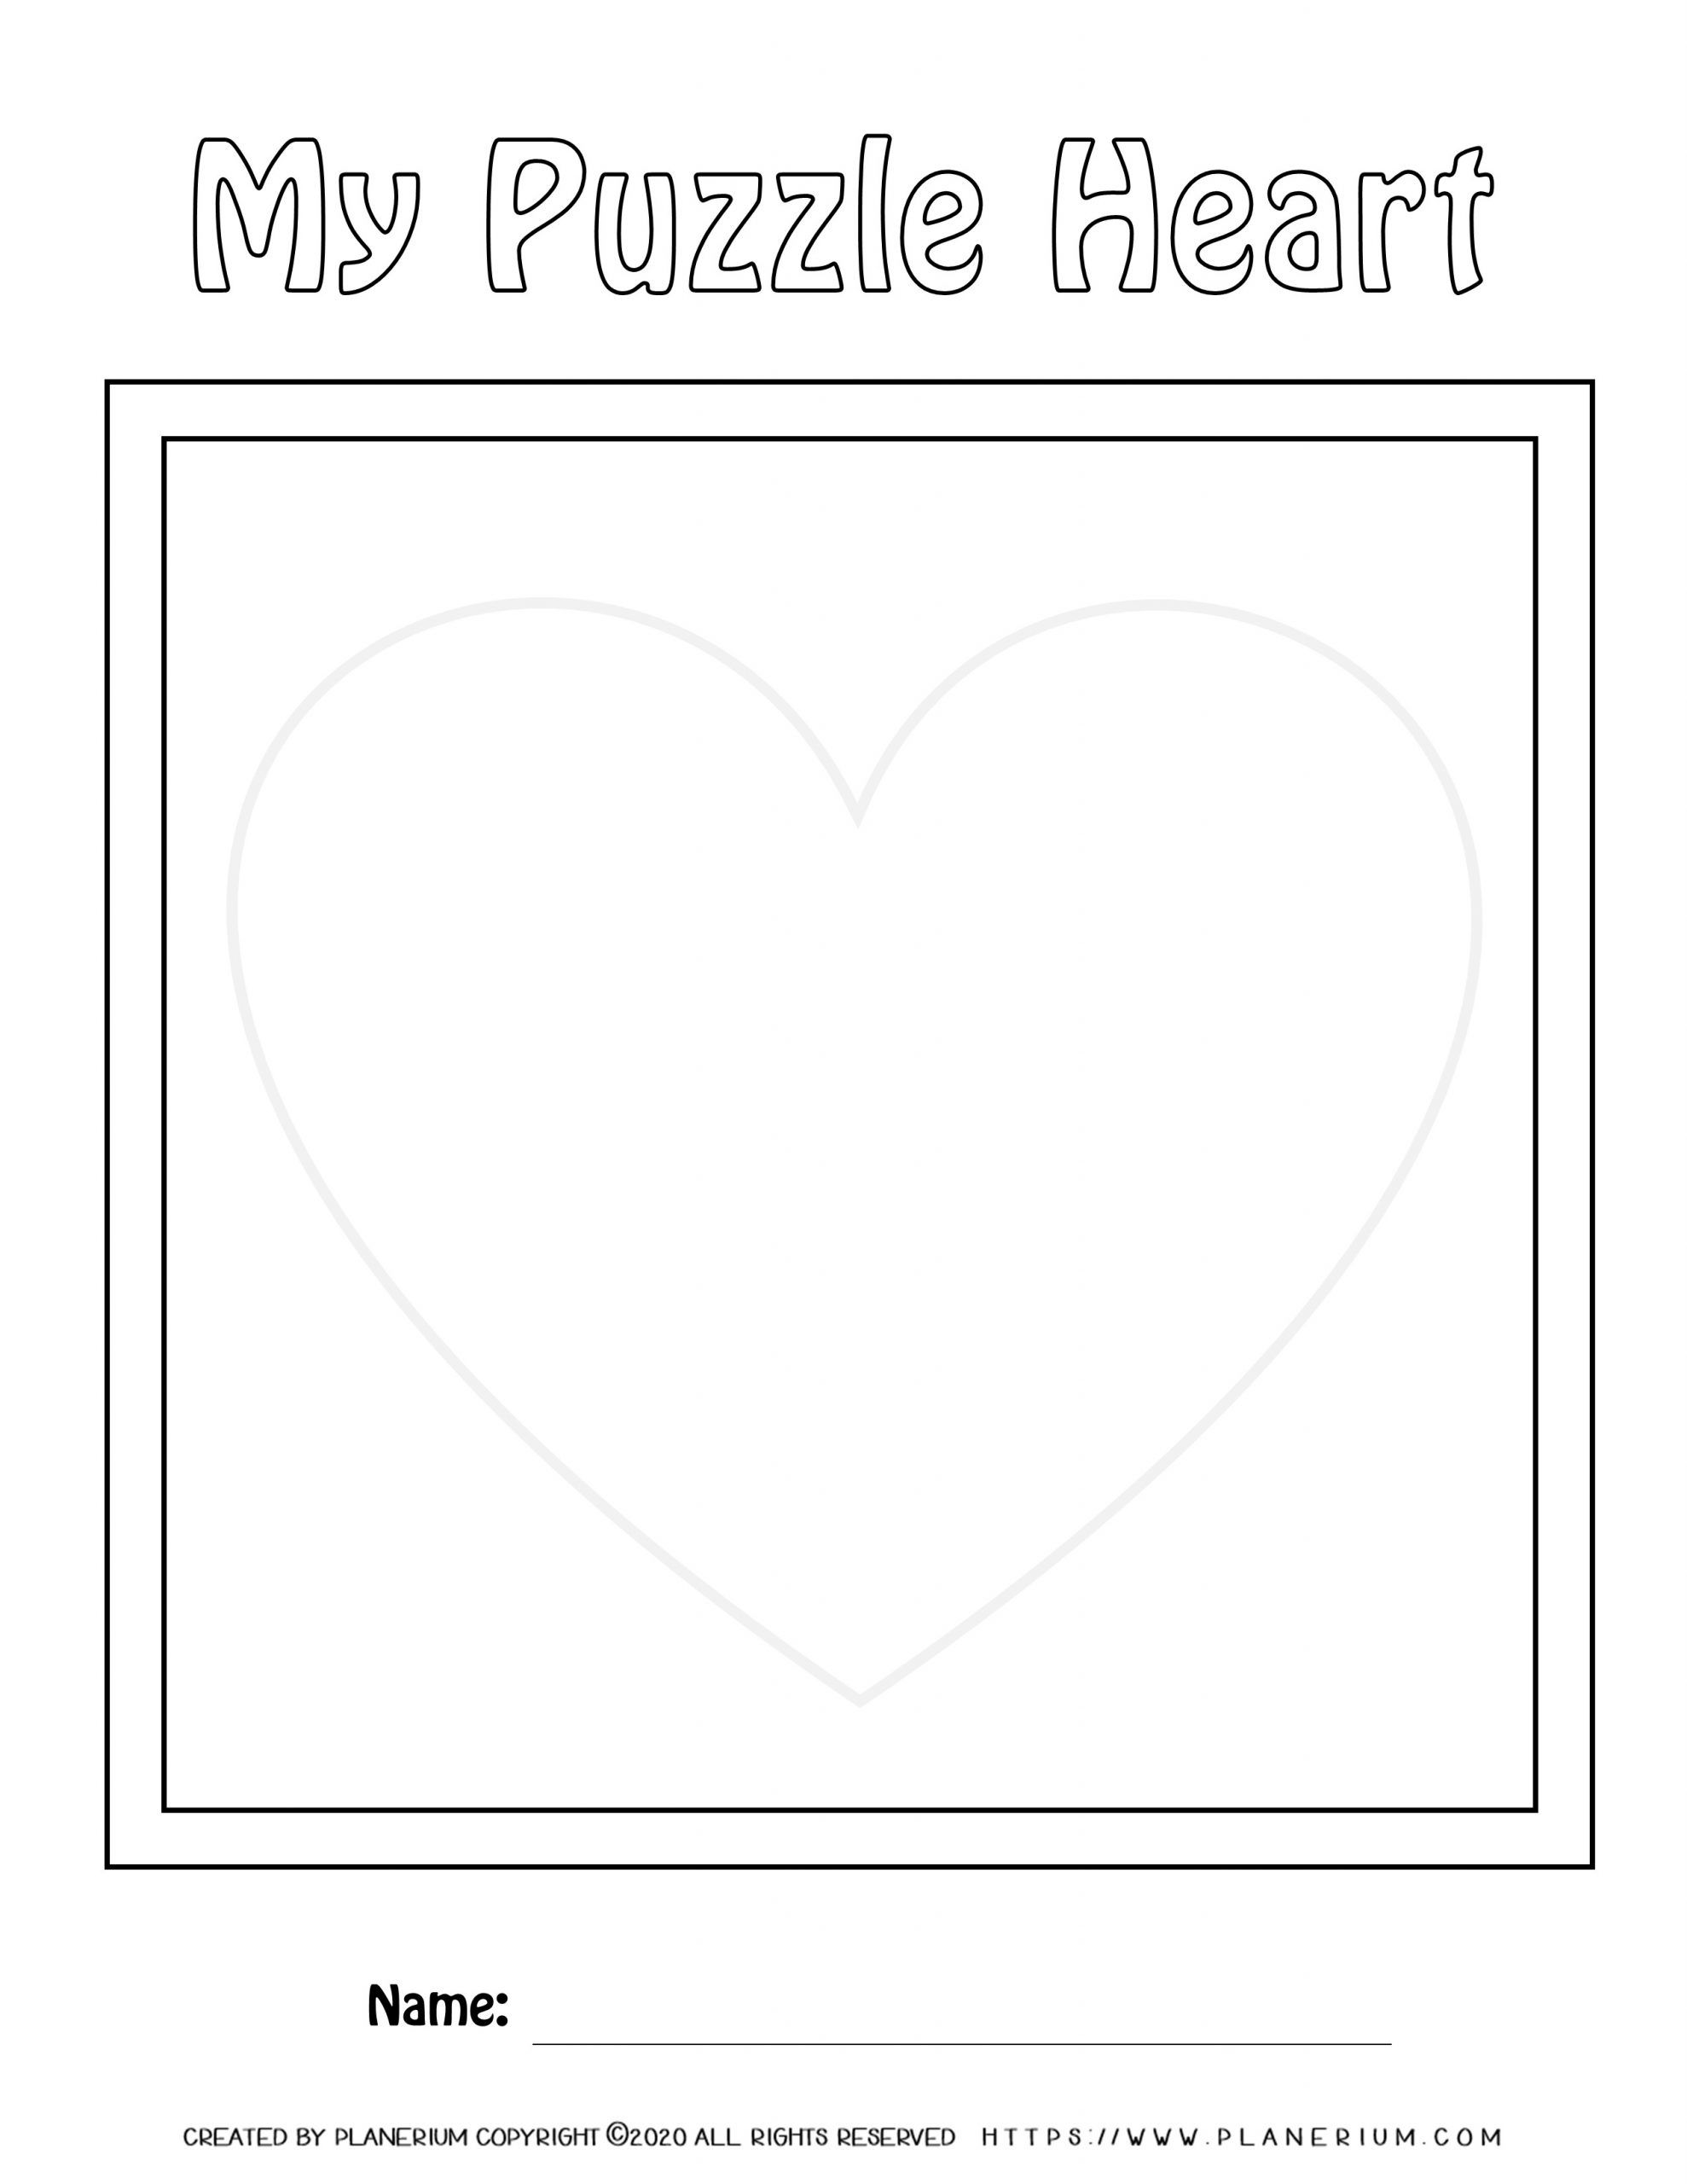 Valentines Day Worksheet - Heart vertical puzzle layout